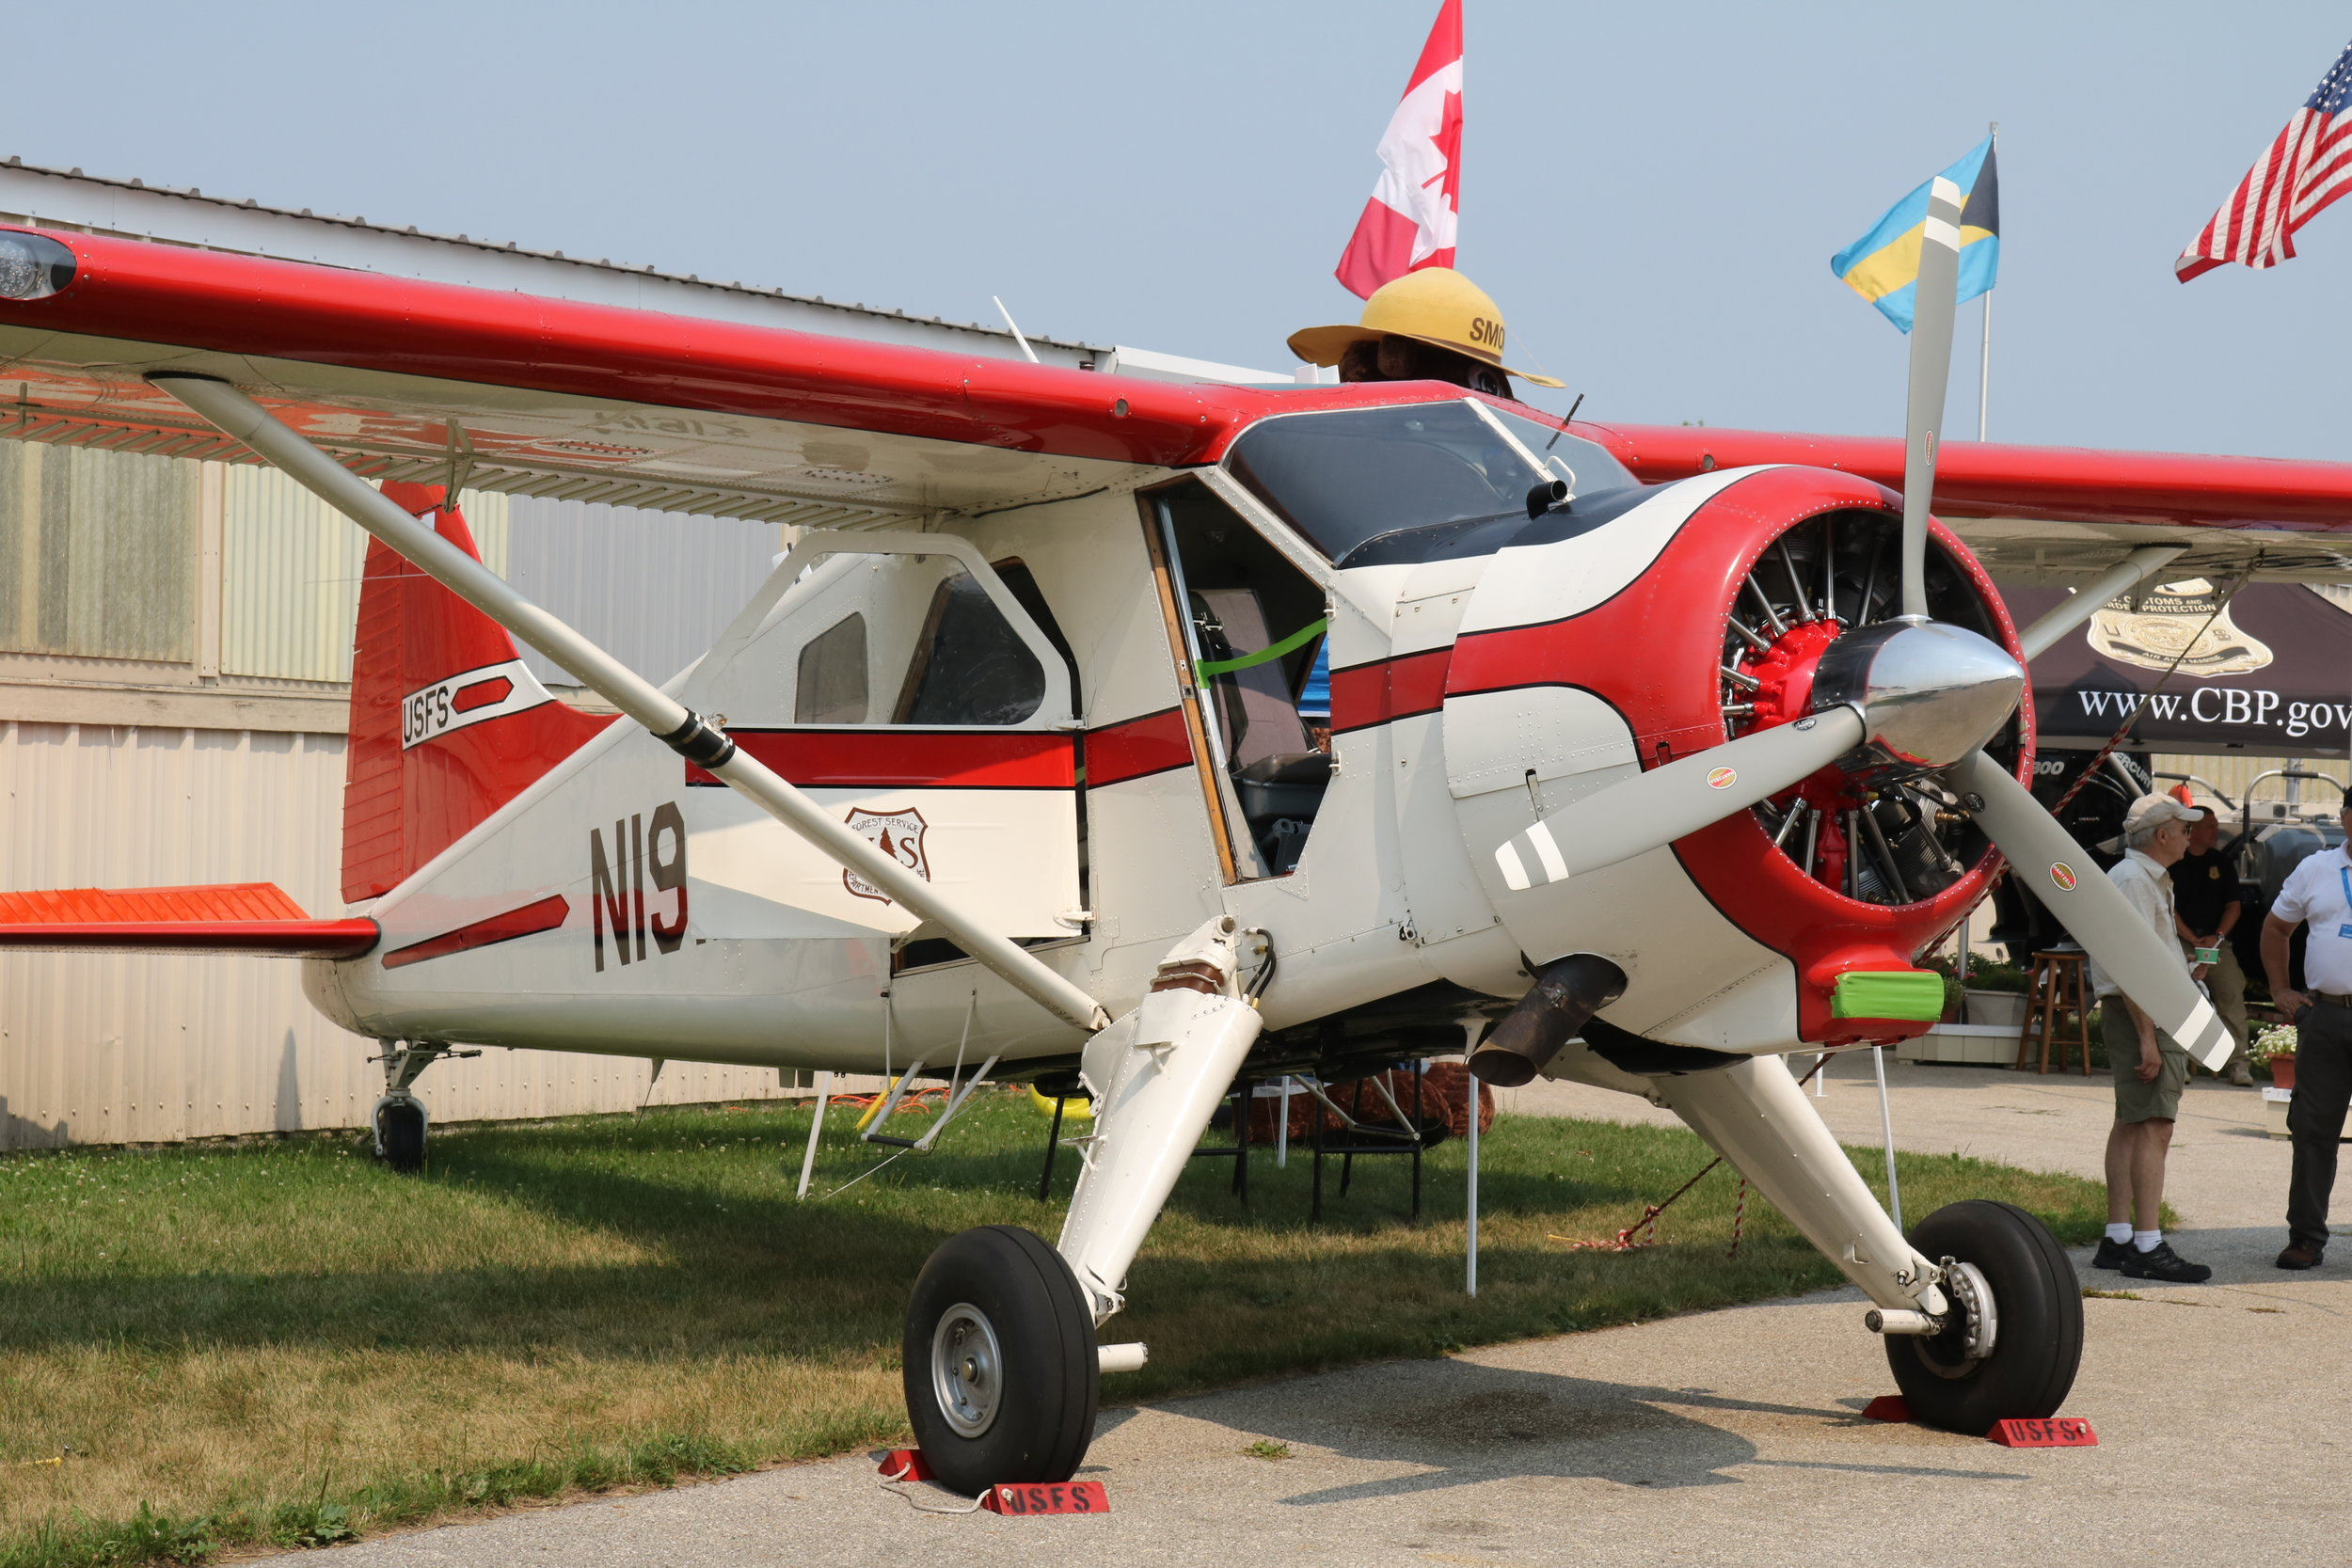 N191Z United States Forestry Service DHC-2 Beaver Mk1 taken at Osh kosh 24th July 2018 by Andrew Tenny